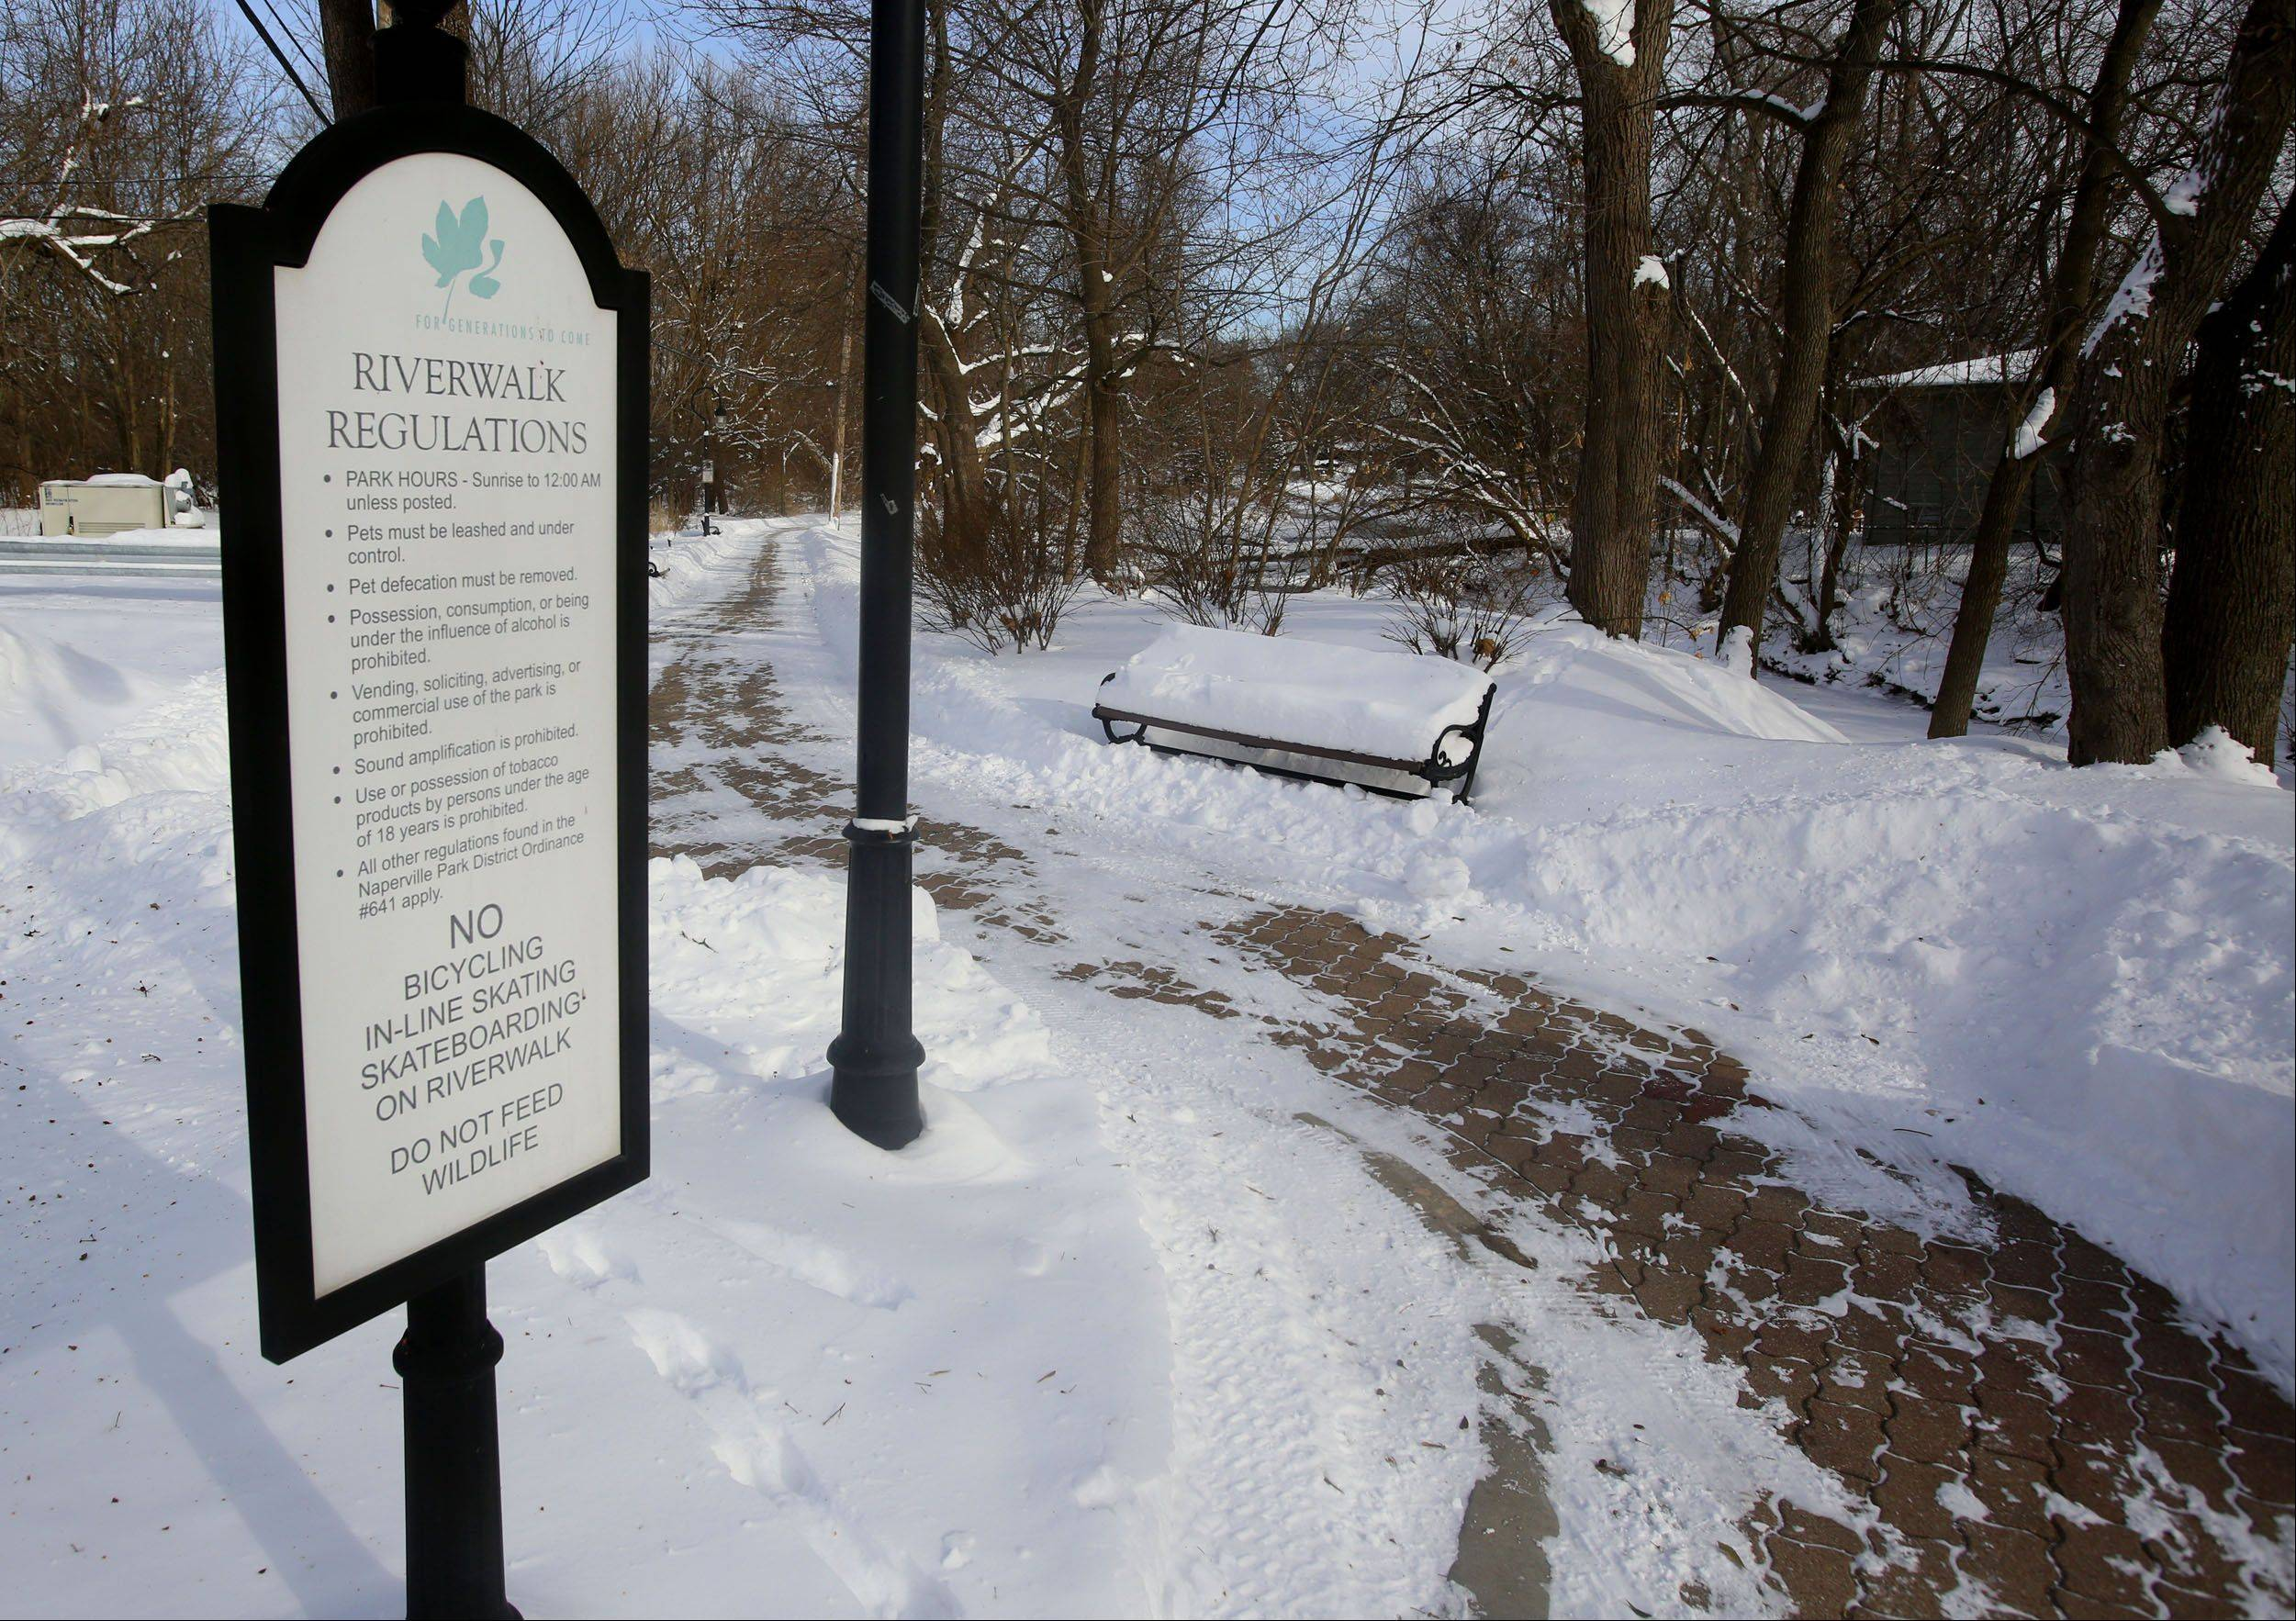 The Naperville City Council approved a change to Riverwalk planning documents that extends the boundary of the popular path another 1,300 feet south to Martin Avenue from its current end at Hillside Road. The extension is not planned to be built in the near future as city council members want to delay it to avoid borrowing funds for the project.